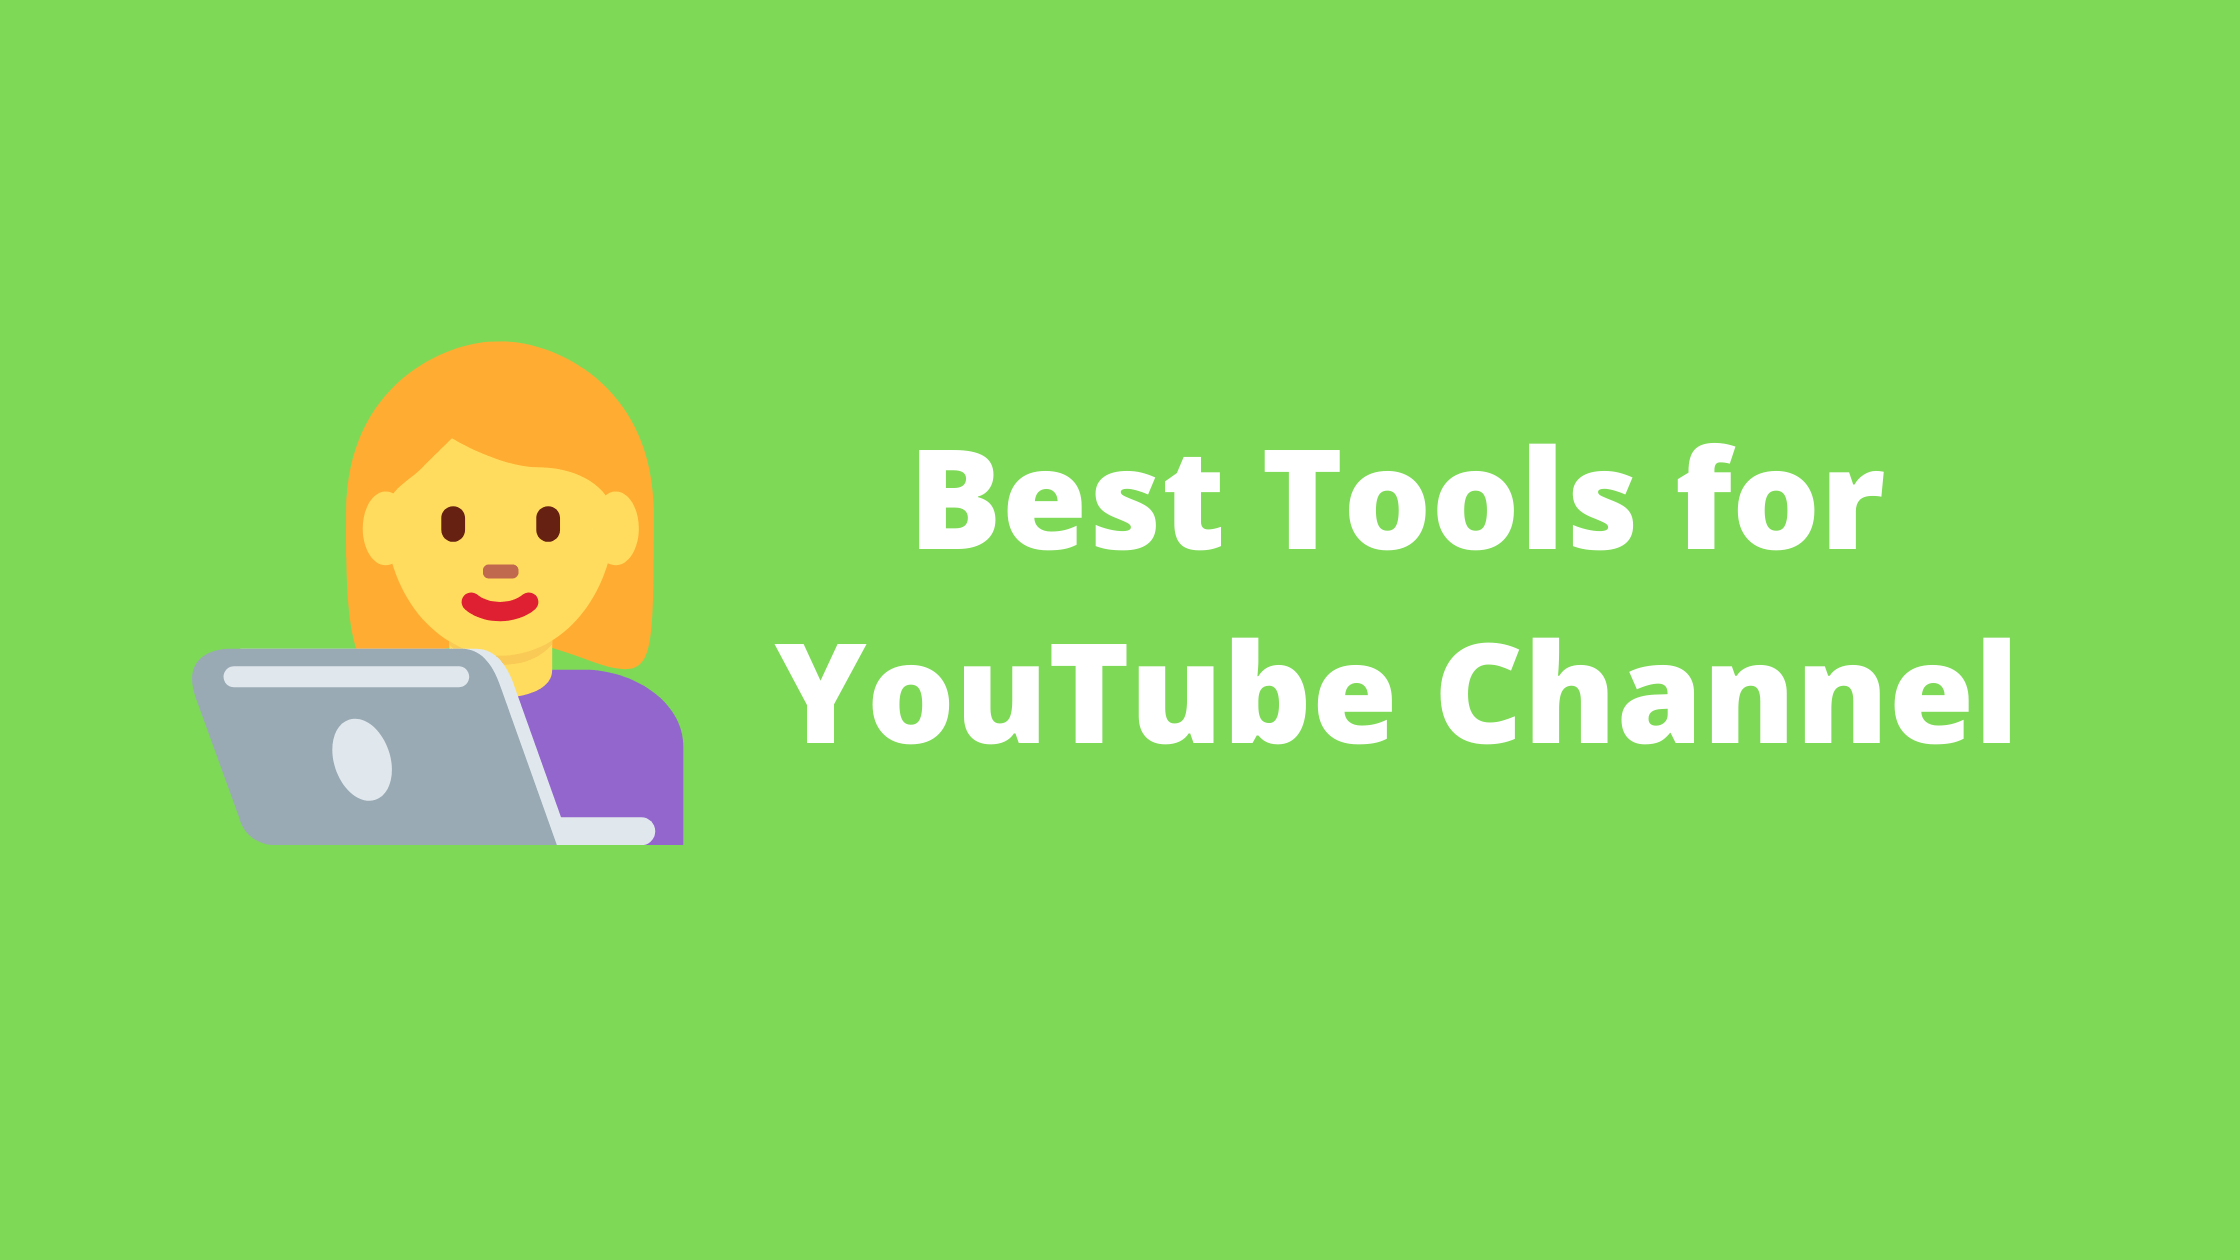 best tools for YouTube channel